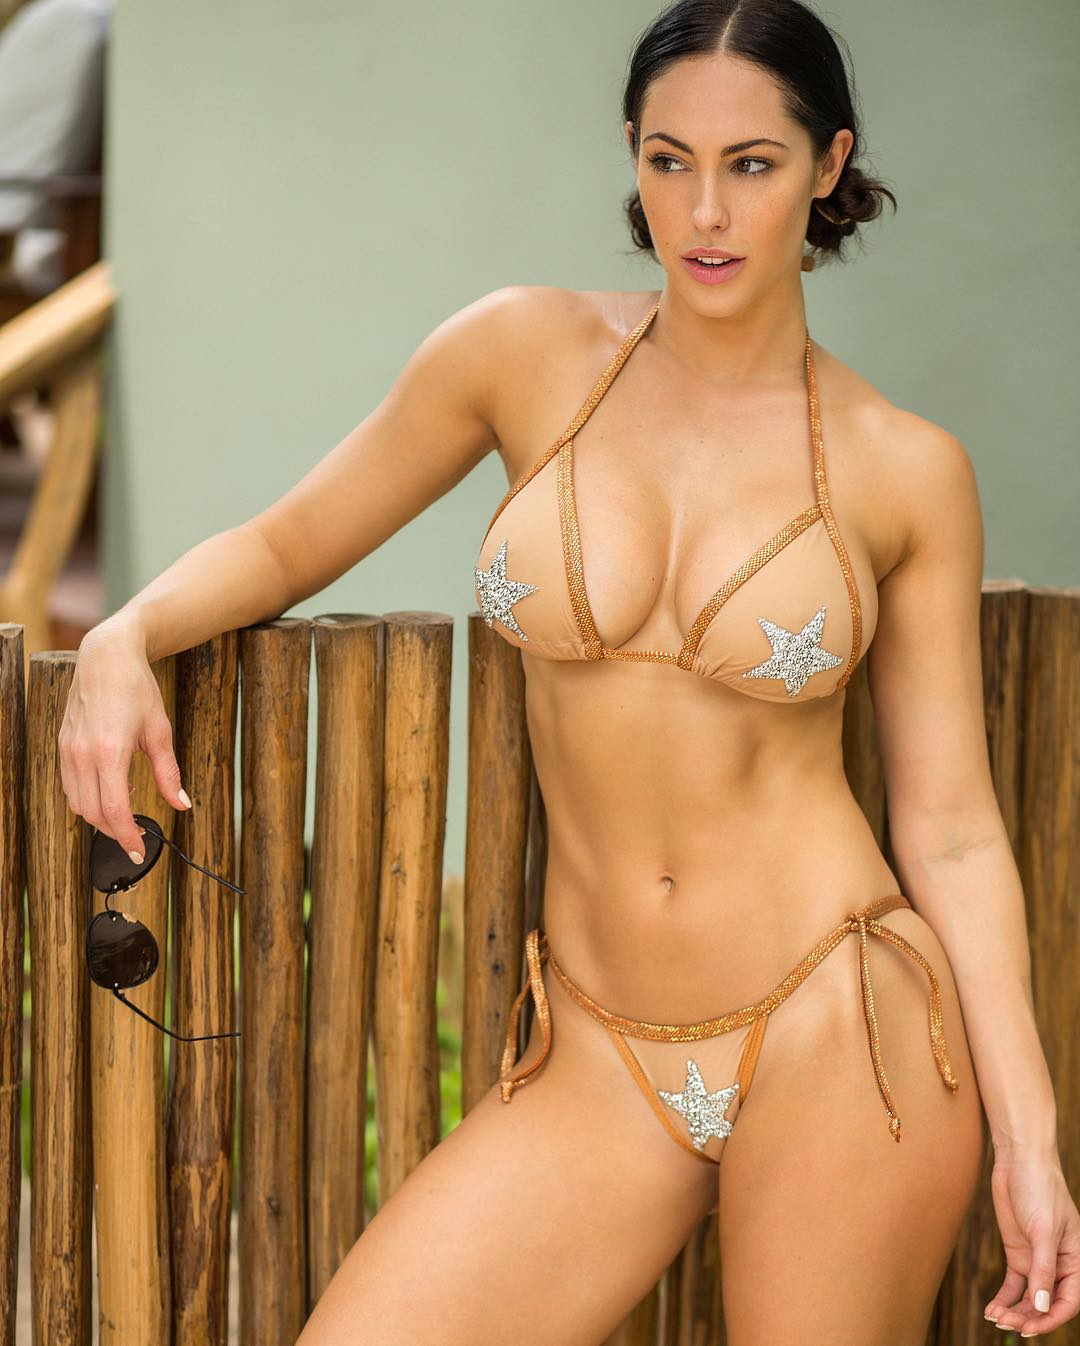 busty brunette fitness model Hope Beel - perfect boobs in a sexy gold bikini